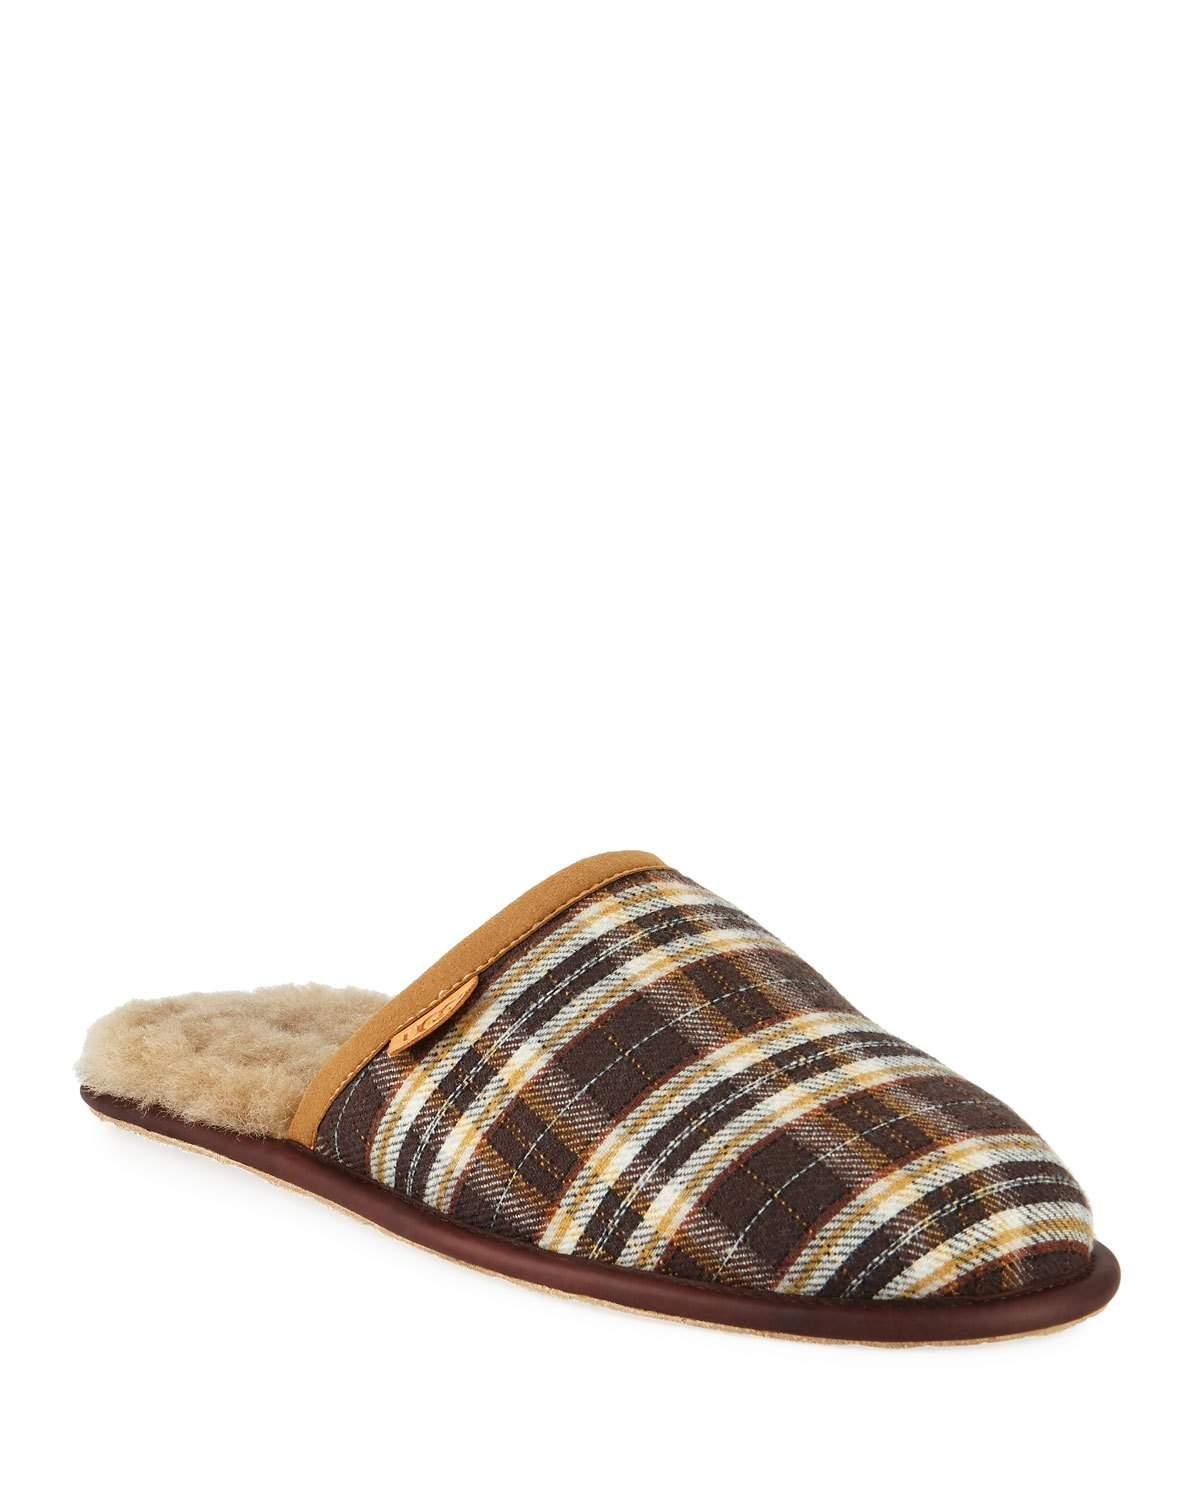 2bef1645850 Men's Scuff Plaid Leather Slippers in Chestnut